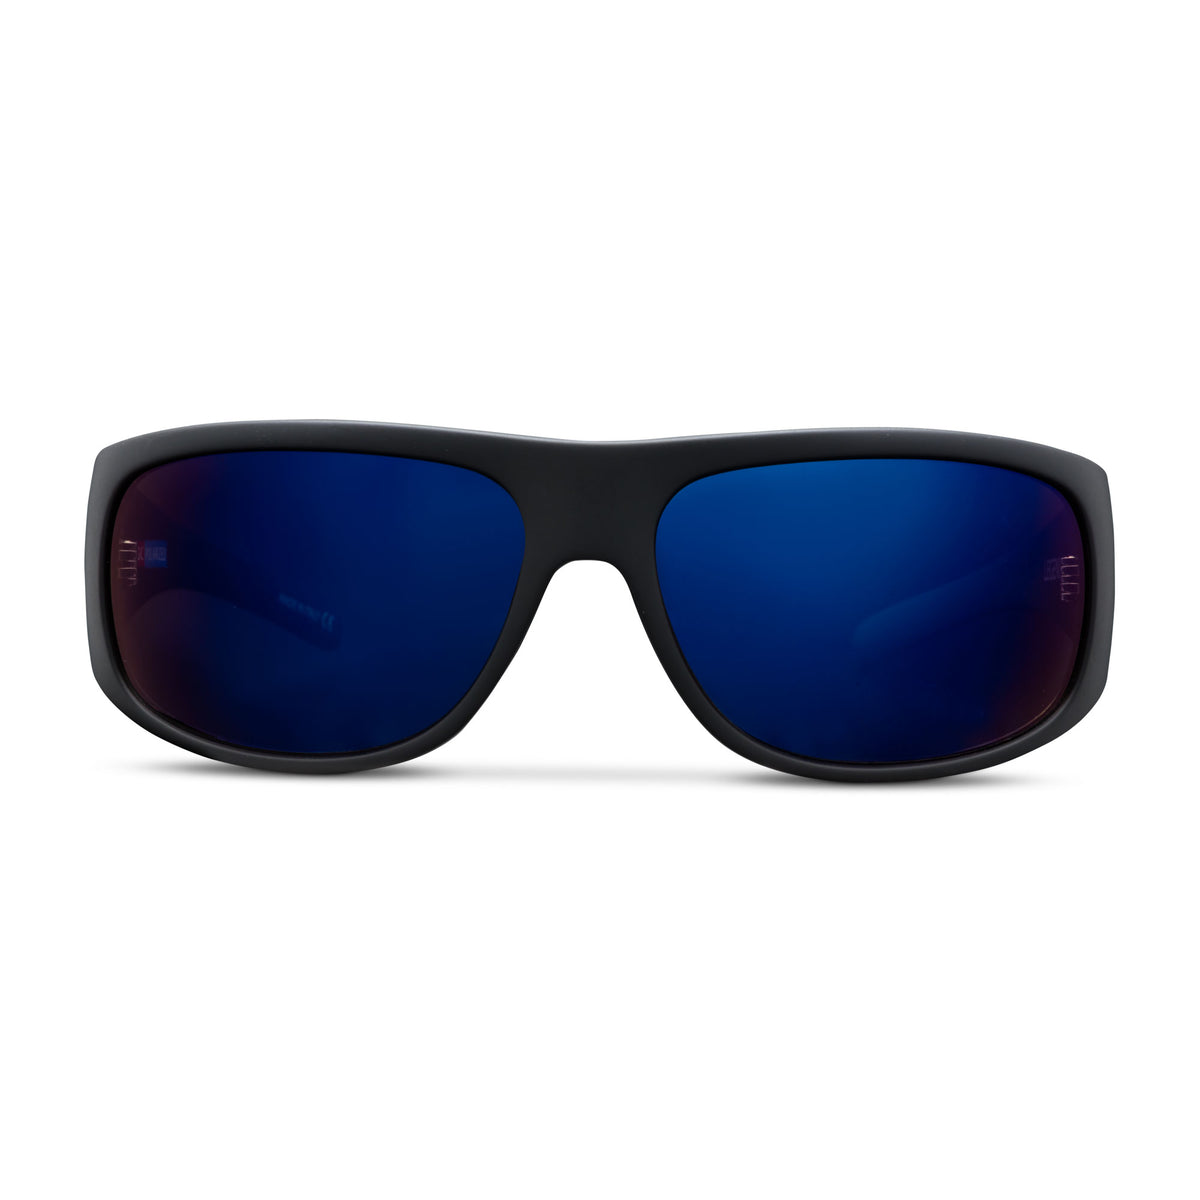 Legend - Polarized Polycarbonate Lens Big Image - 2